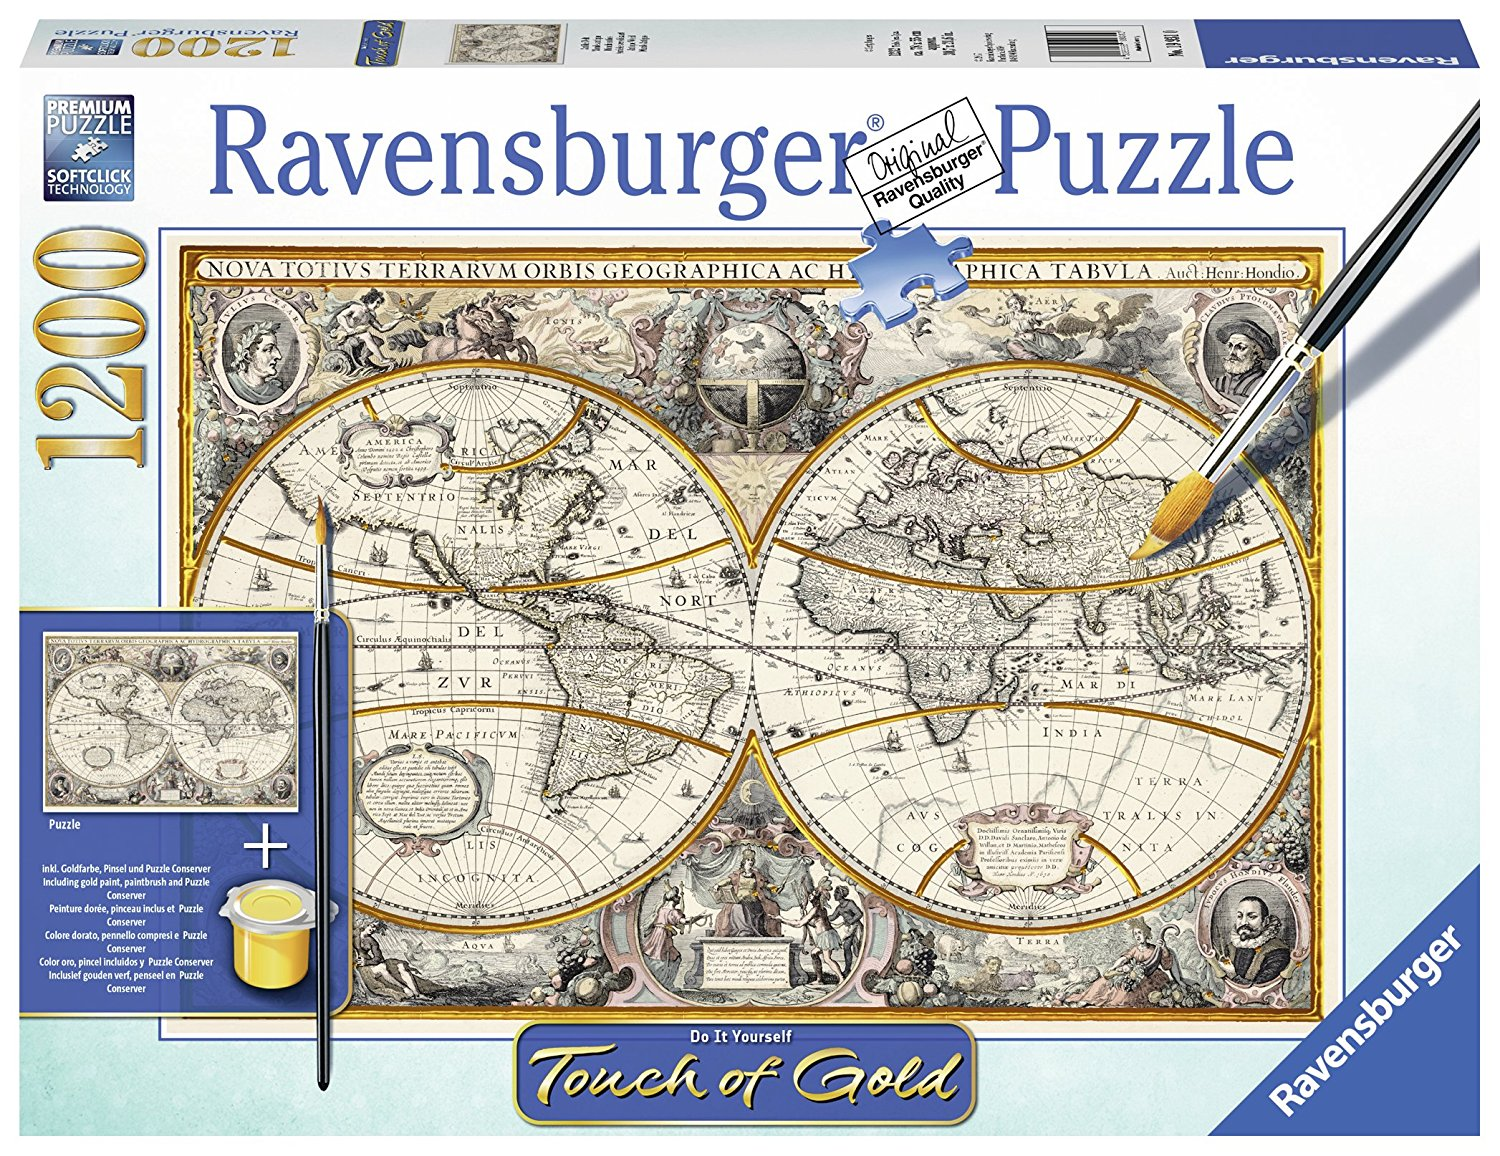 Puzzle do it yourself antique world map ravensburger 19931 1200 do it yourself antique world map gumiabroncs